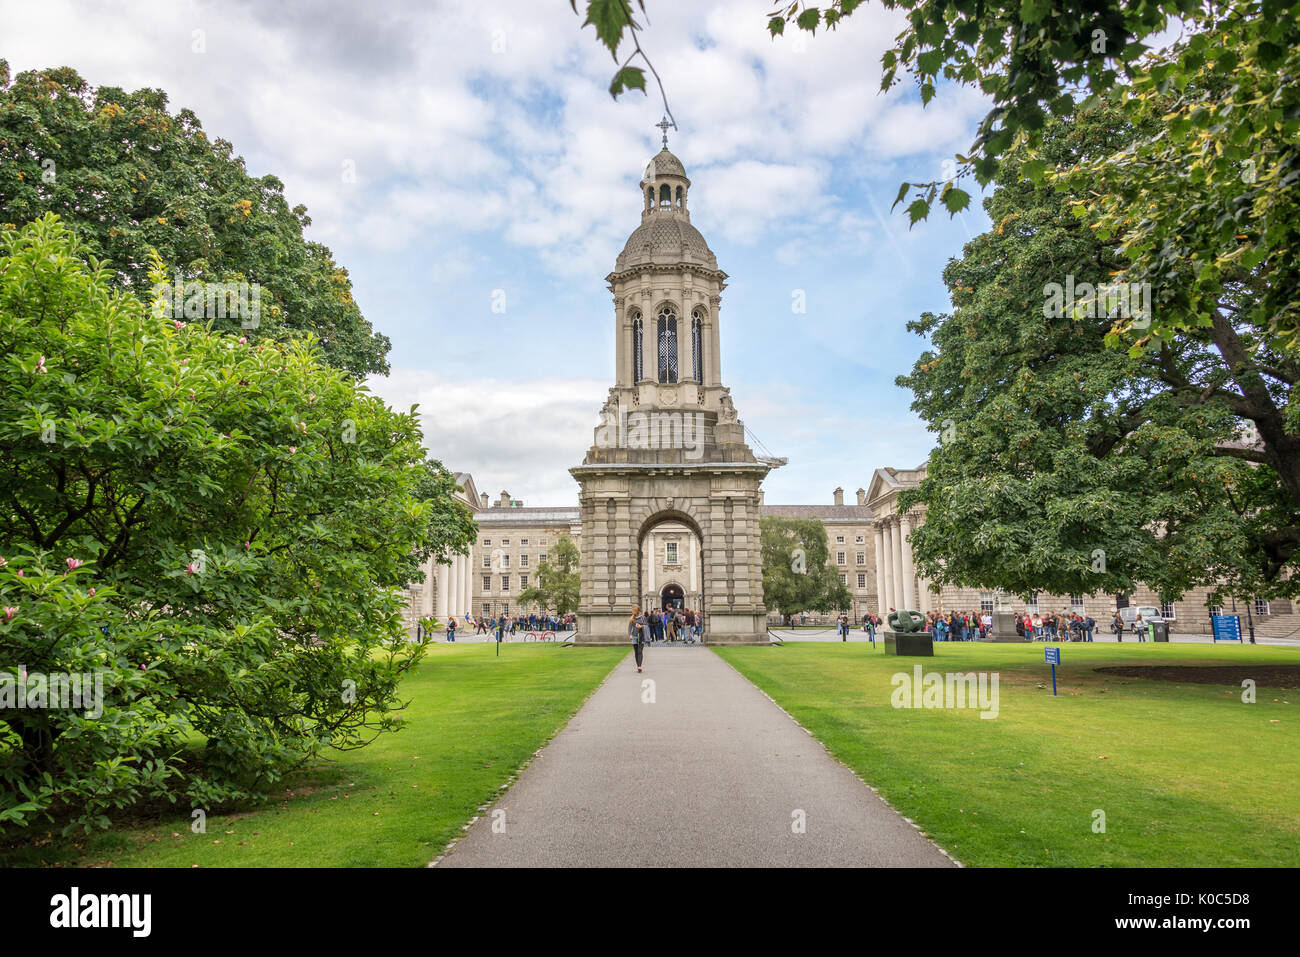 Old bell tower at Trinity College in Dublin, Ireland - Stock Image